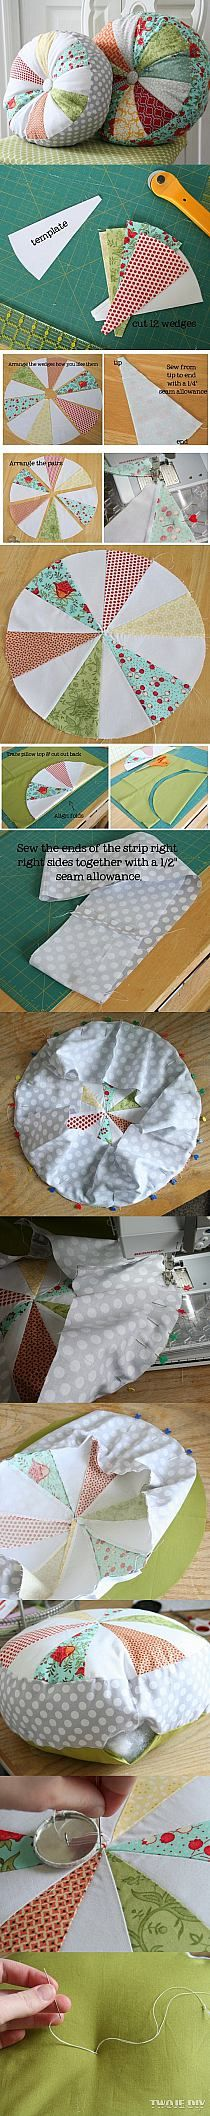 Excellent DIY Pictorial on how to make a quilted old-fashioned pillow!